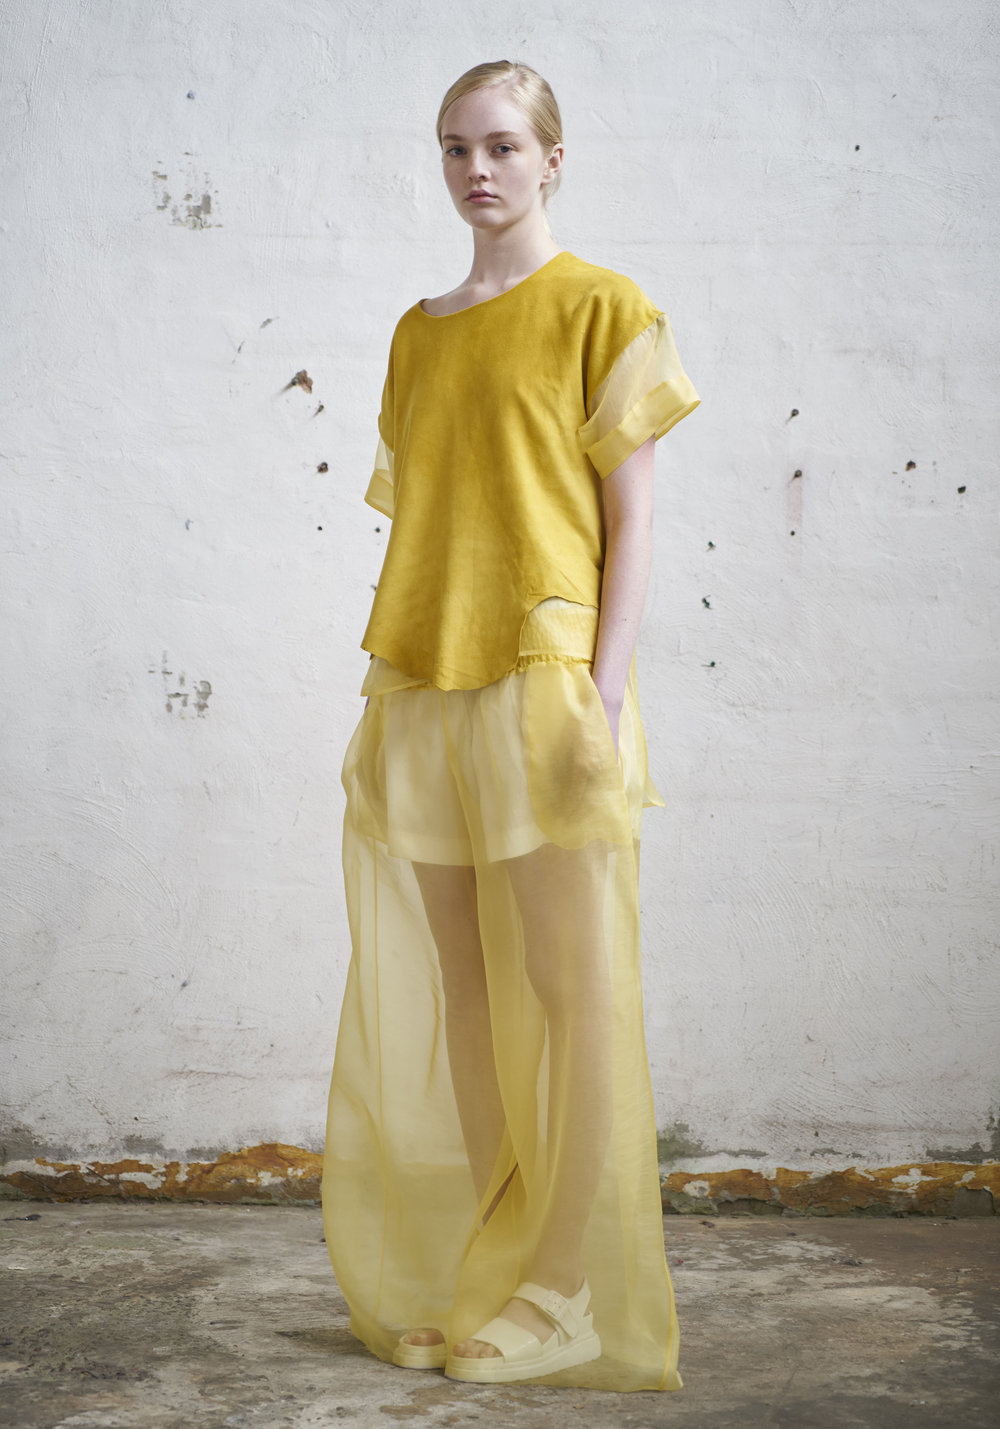 L O O K 0 4  892/S173441 Suede/Organza Boxy Top W/Sleeves  105/S176133 Gathered Wide Pants  340/F176133S Gathered Wide Shorts